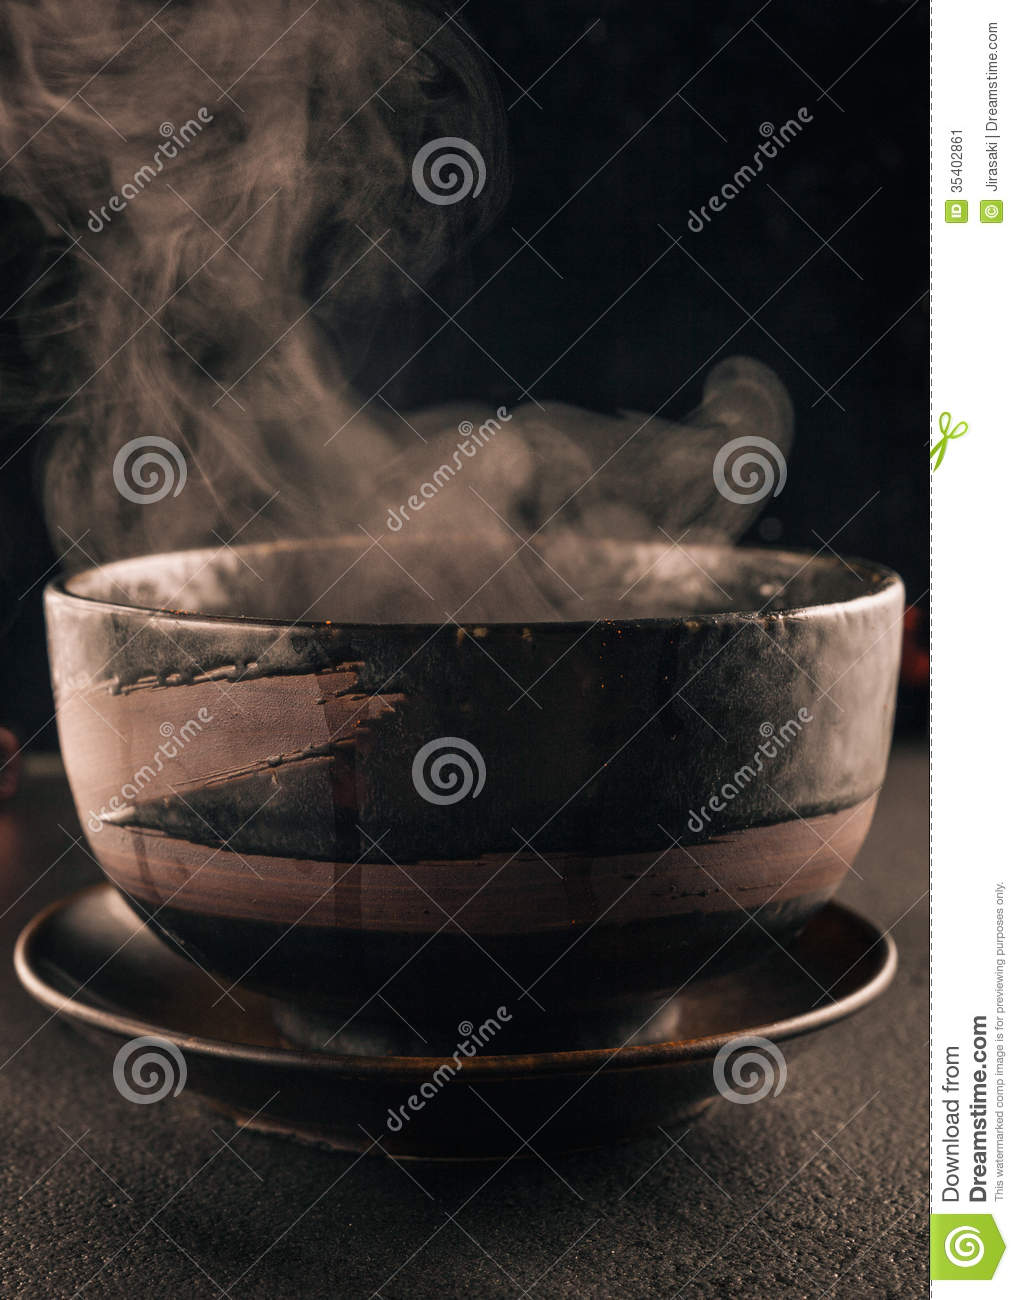 Steamy Soup Bowl Stock Image Image Of Table Food Steamy 35402861